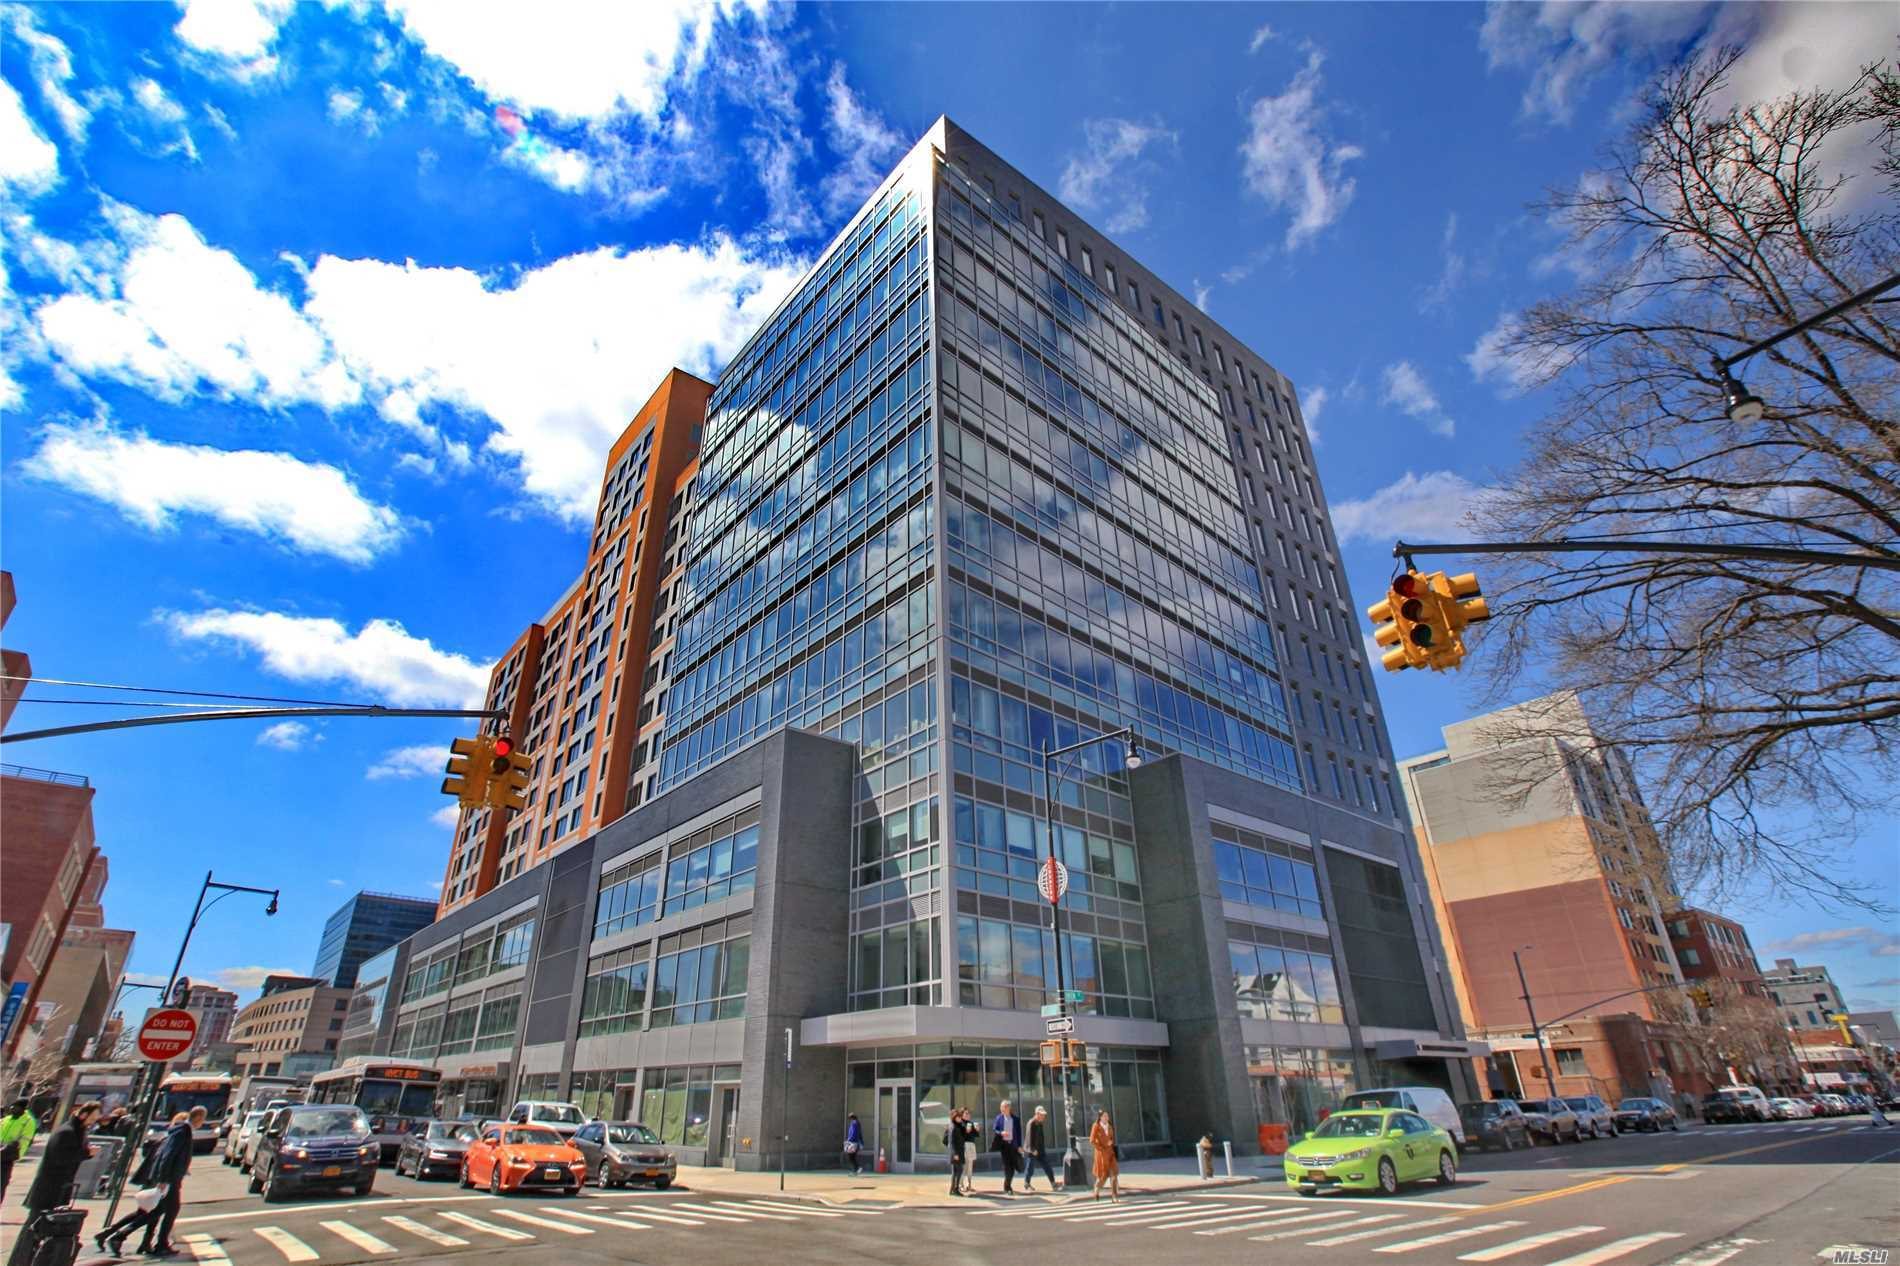 Leed Certified Type A Office Building New Construction, 126' Ceiling Height, 24 Yrs Tax Abatement, Solarban Solar Control Low-E Glass Curtain Wall For Maximum Energy Efficiency, Designated Male/Female Restrooms On Every Floor, 24-Hour Concierge, Underground Public Parking 600+ Spots, Bike Room, Steps Away From 7-Train Subway, Lirr, Buses. This Unit Is Designated For Medical Office Use & Will Be Delivered White Box Condition With Finished Walls, Carpet Flooring W/Lights & Outlets & Hvac.